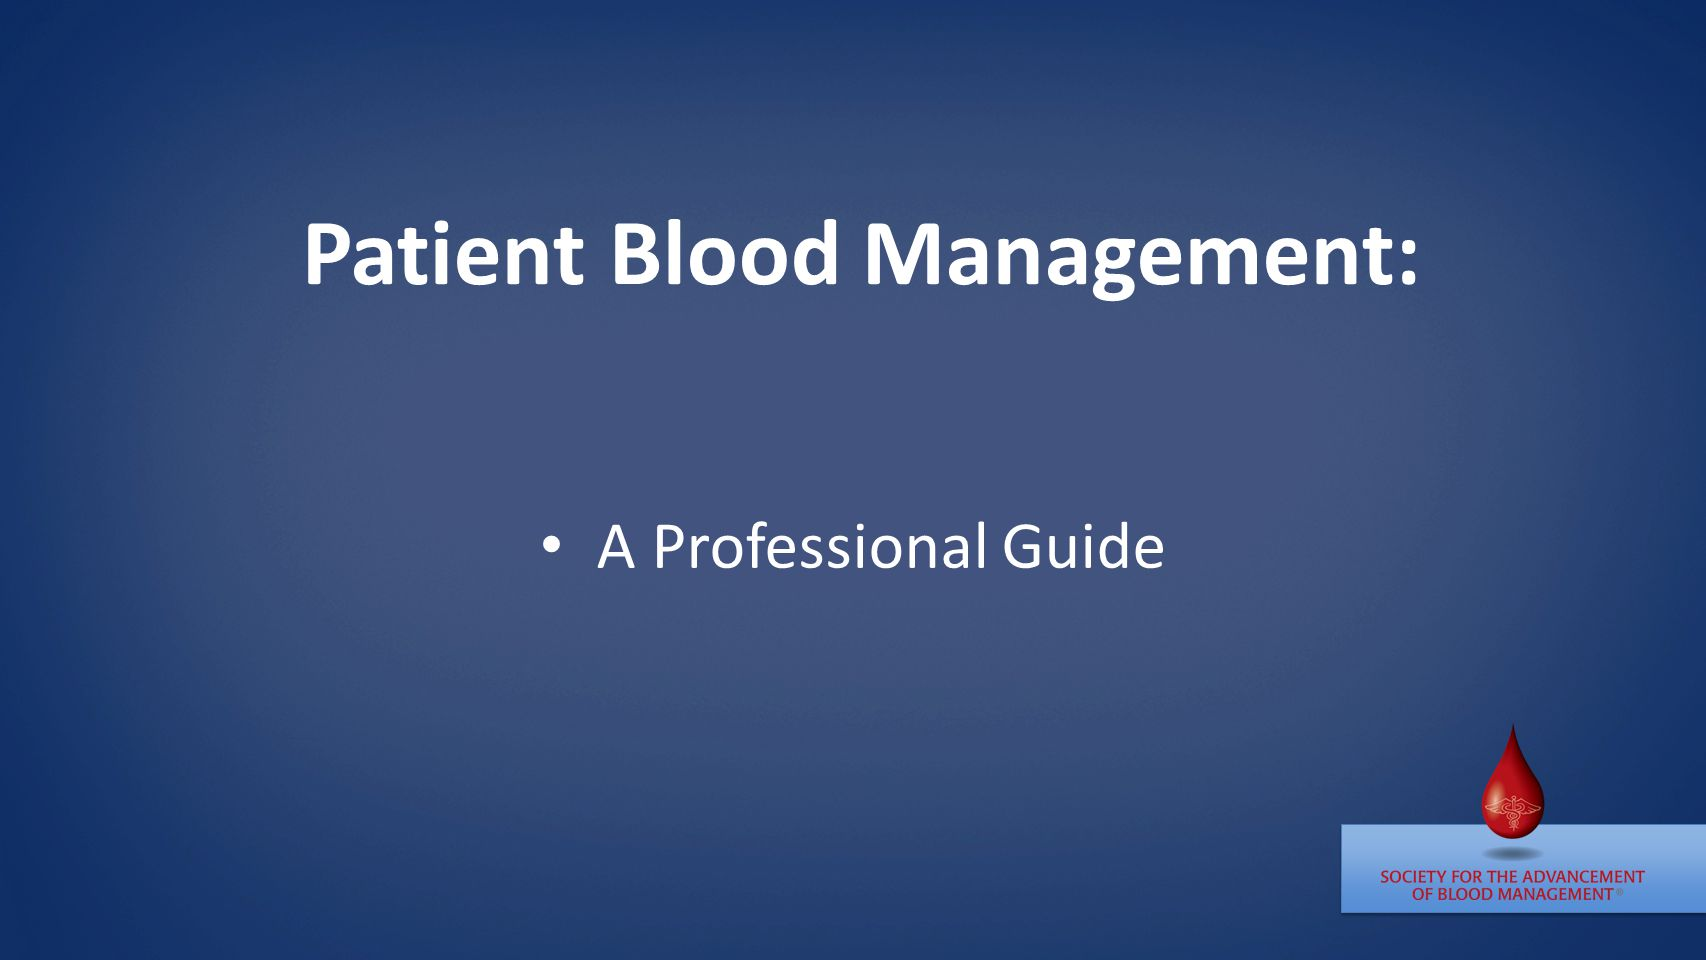 SABM's definition of Patient Blood Management (PBM) The timely application of evidence-based medical and surgical concepts designed to maintain hemoglobin concentration, optimize hemostasis and minimize blood loss in an effort to improve patient outcome.